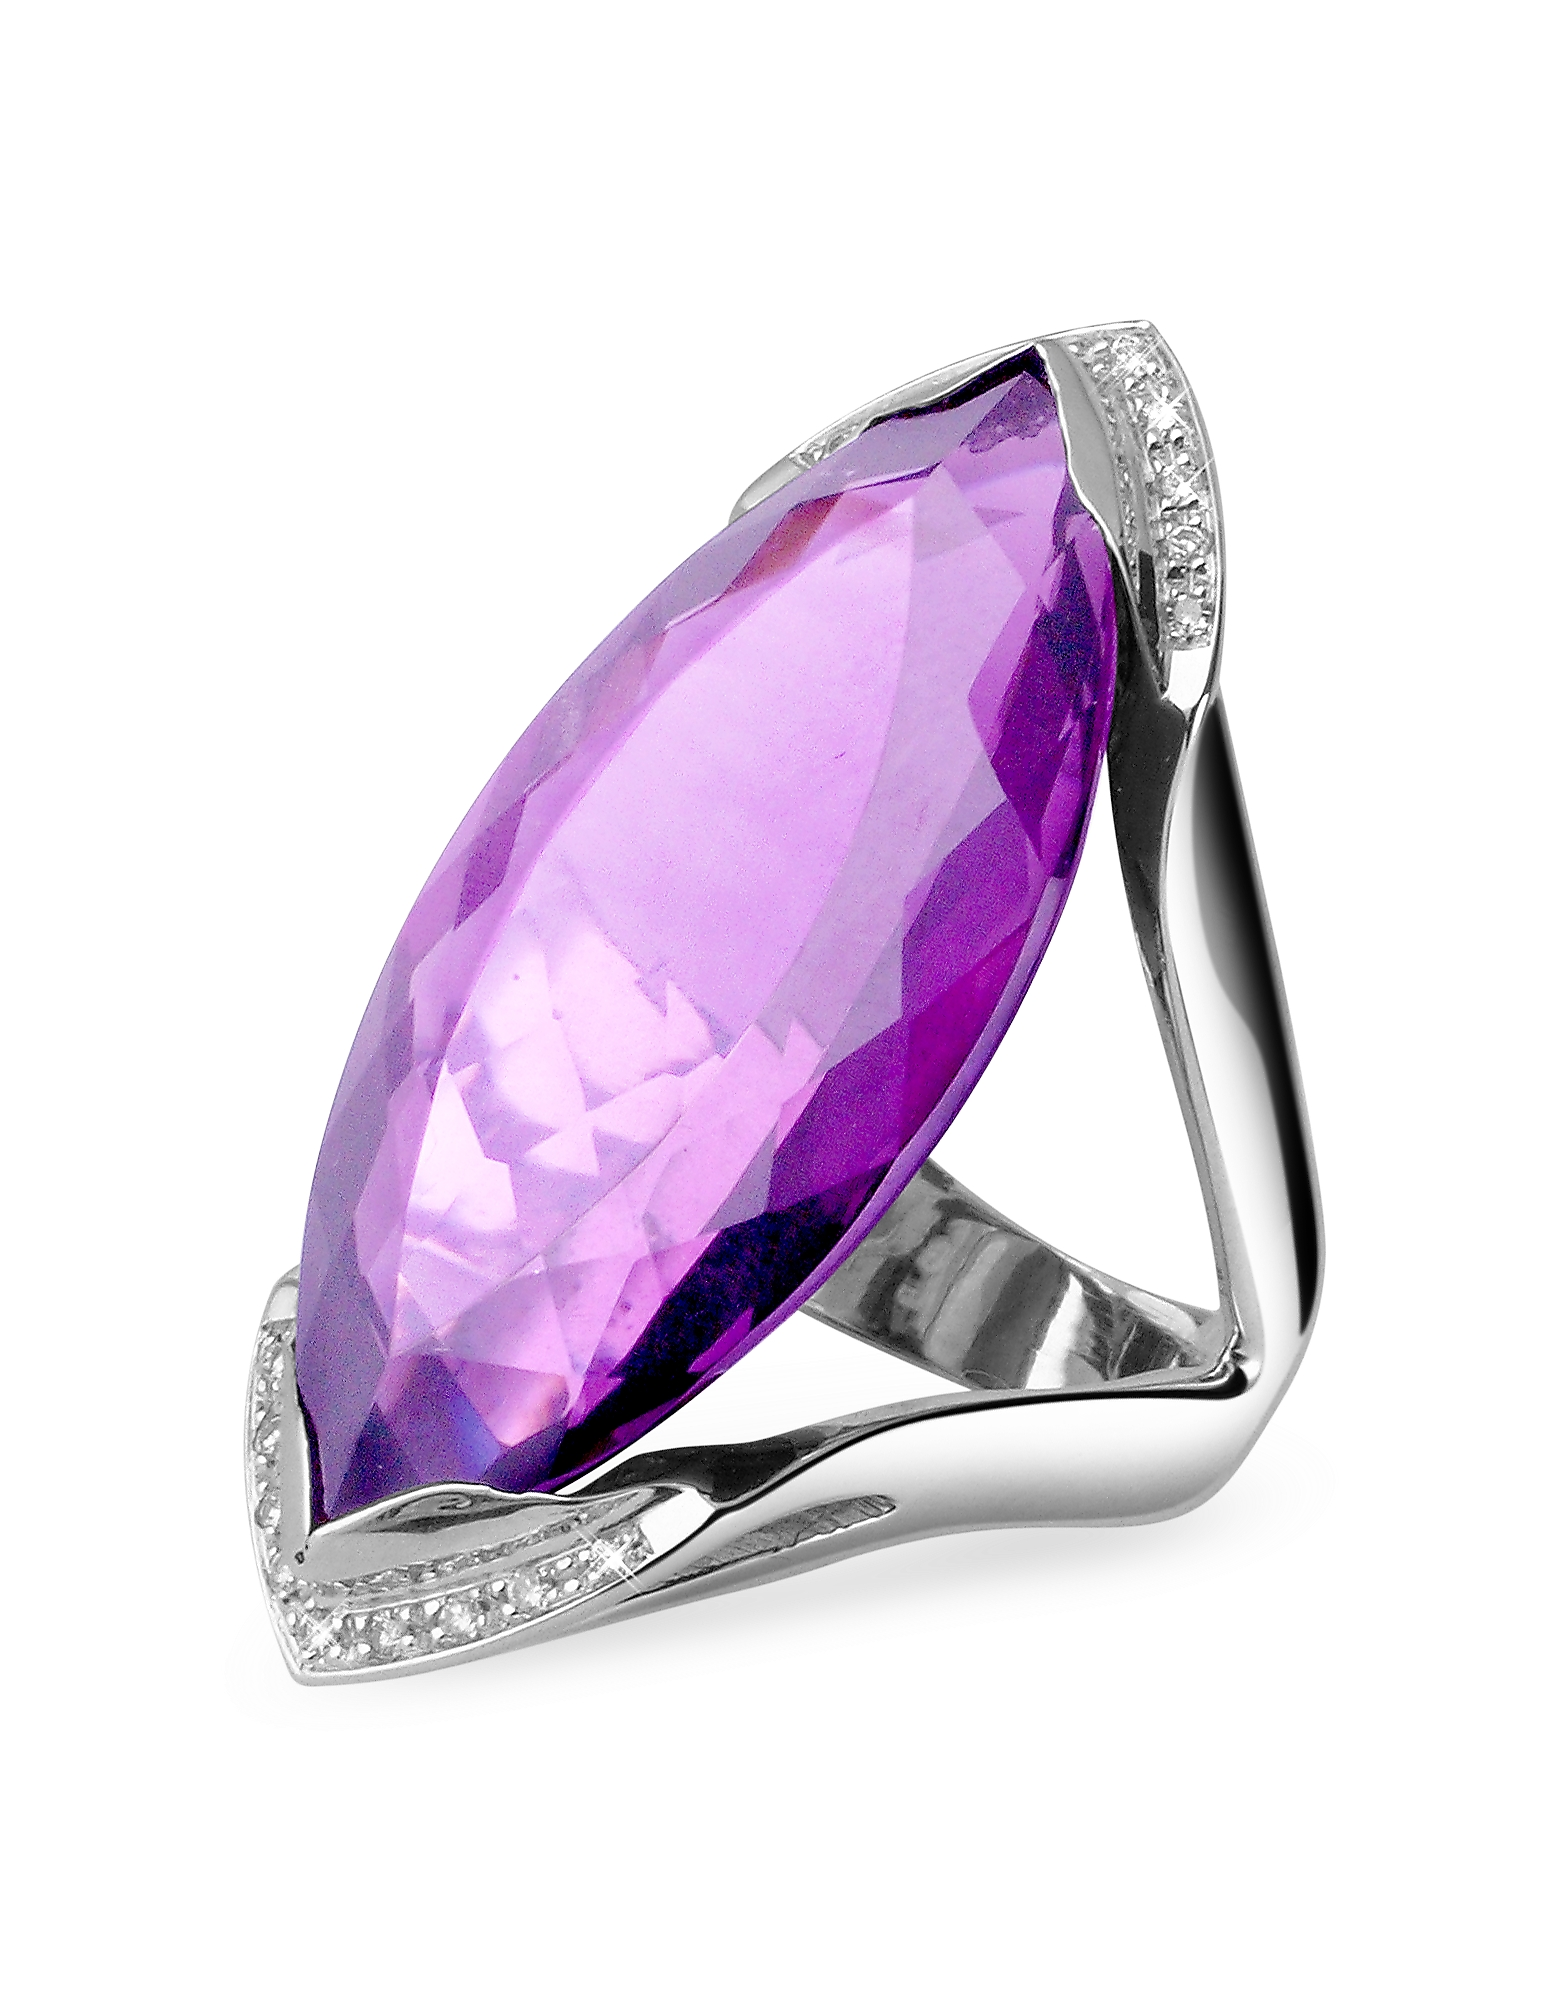 Forzieri Rings, Amethyst and Diamond White Gold Fashion Ring